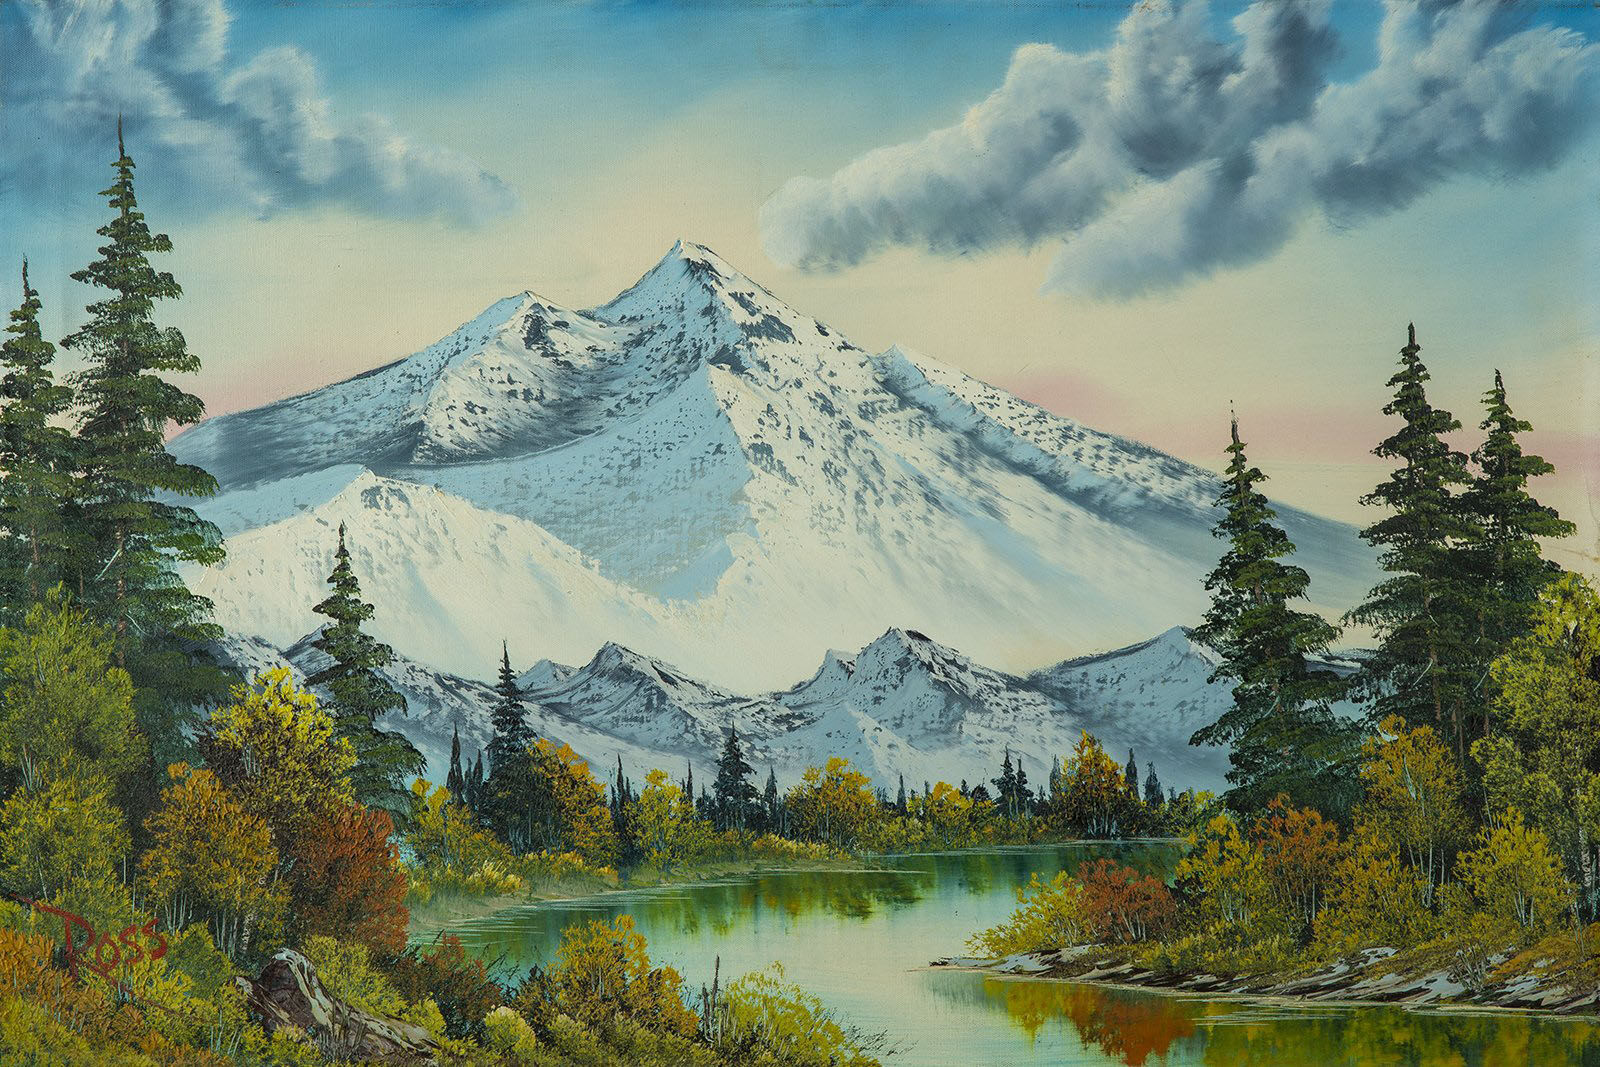 Bob Ross, Mountain Summit, Original Oil Painting, 1982. Image Used with Permission © Modern Artifact.